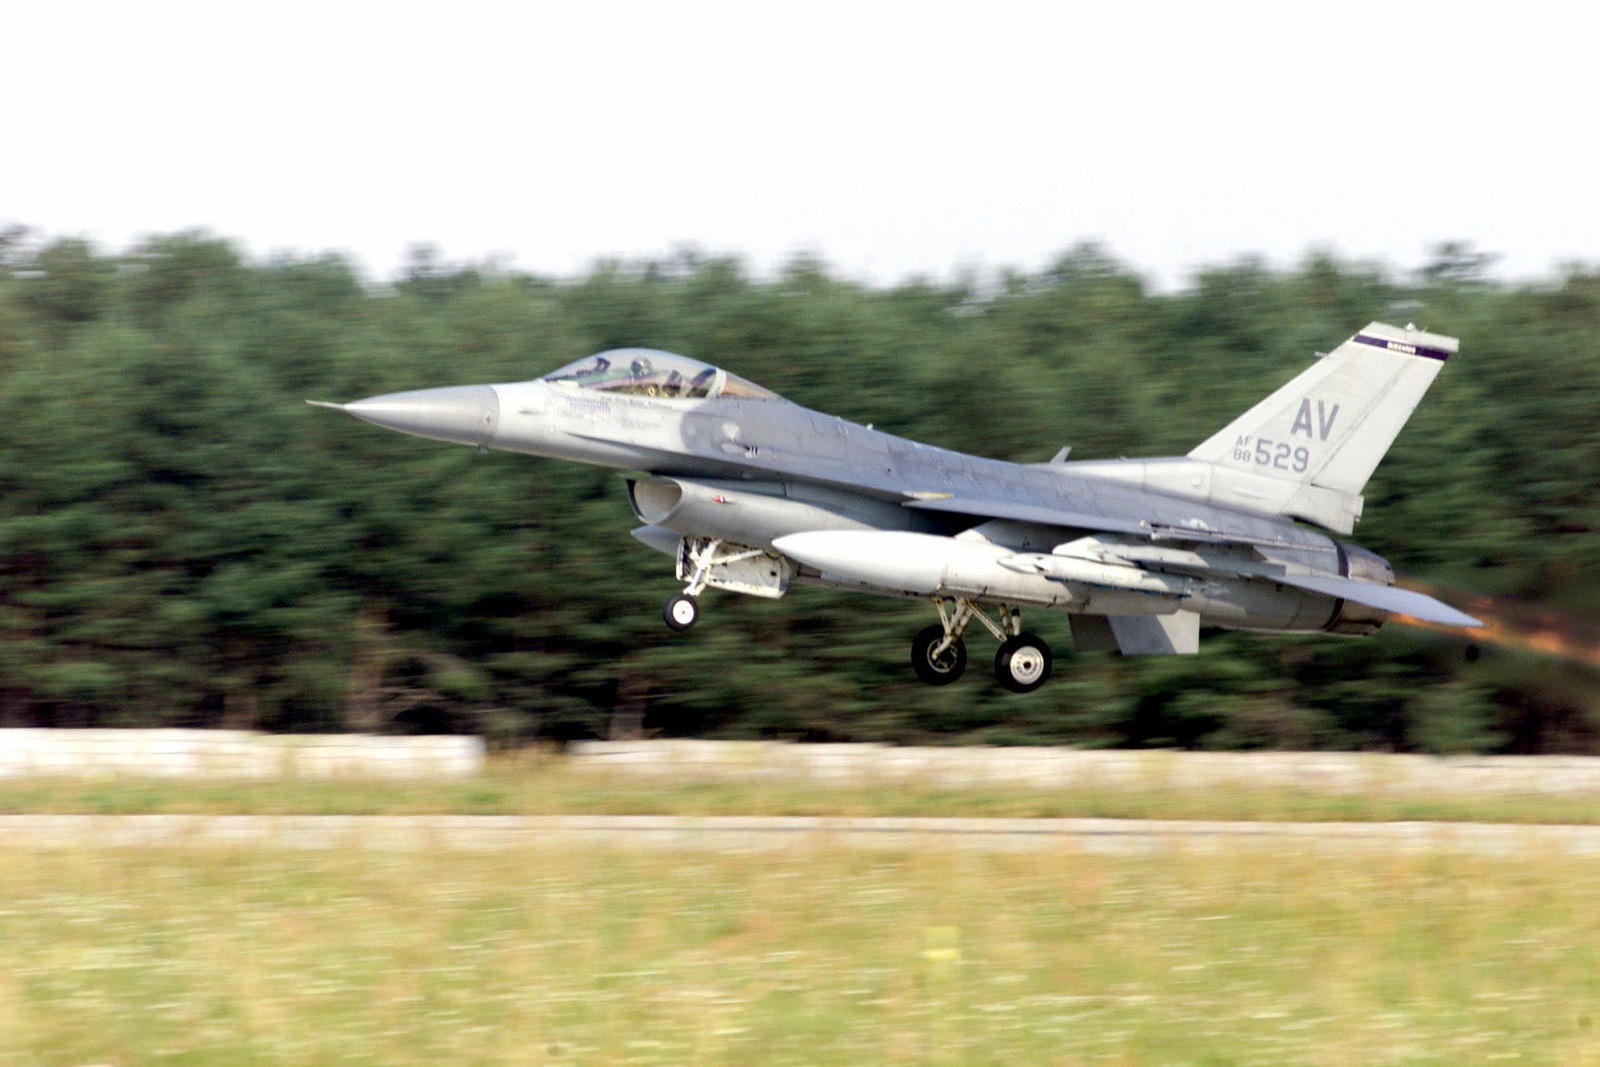 A United States Air Force F-16C Fighting Falcon, 510th Fighter Squadron, 31st Fighter Wing, deployed from Aviano Air Base, Italy, lifts-off as it heads to the range for the day's first sortie. Training Exercise Iron Claw, Kuchyna AB, Slovakia, 11 September 2000